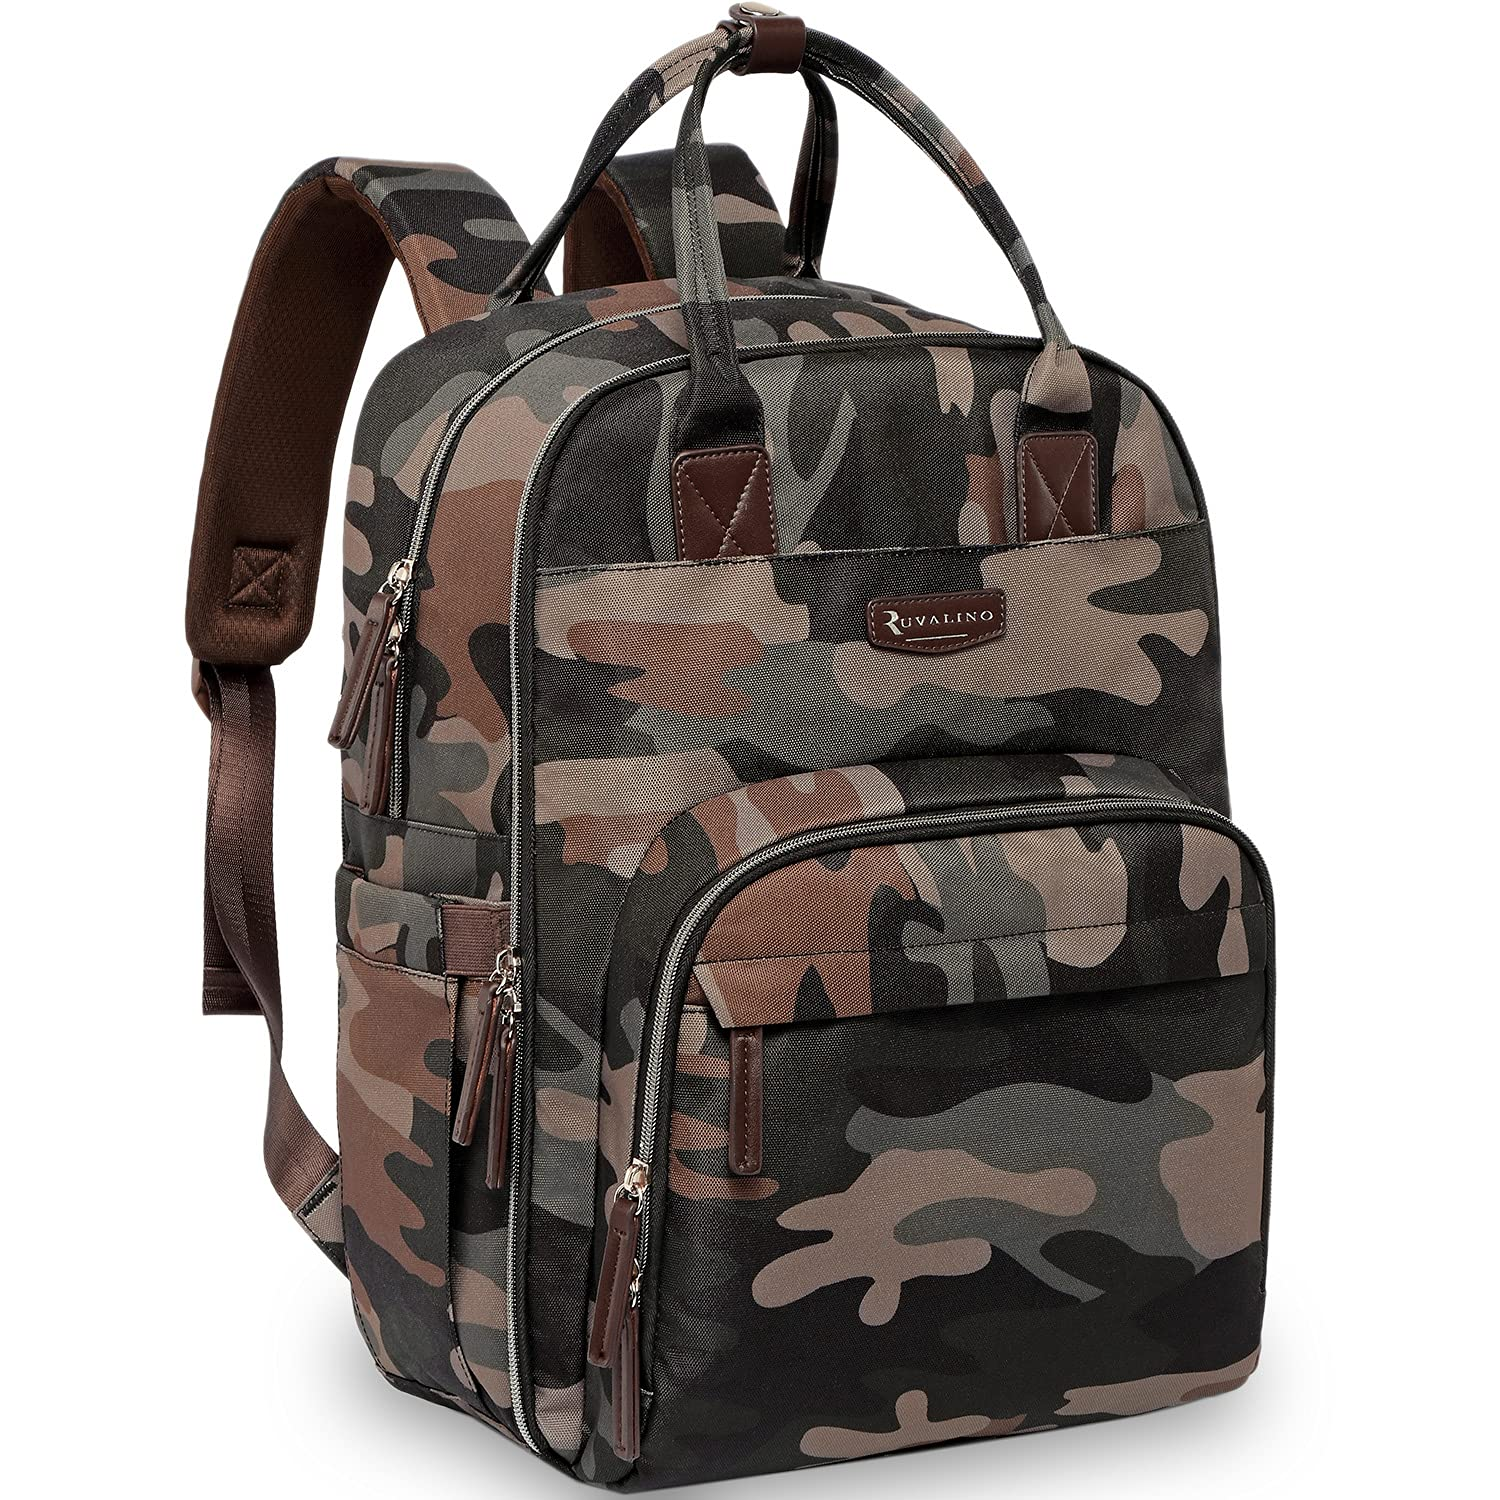 Diaper Bag Backpack, RUVALINO Multifunction Large Capacity Travel Backpack for Men, Waterproof Baby Diaper Bags with Changing Pad for Boy and Girl, New Dad Gifts, Green Camo